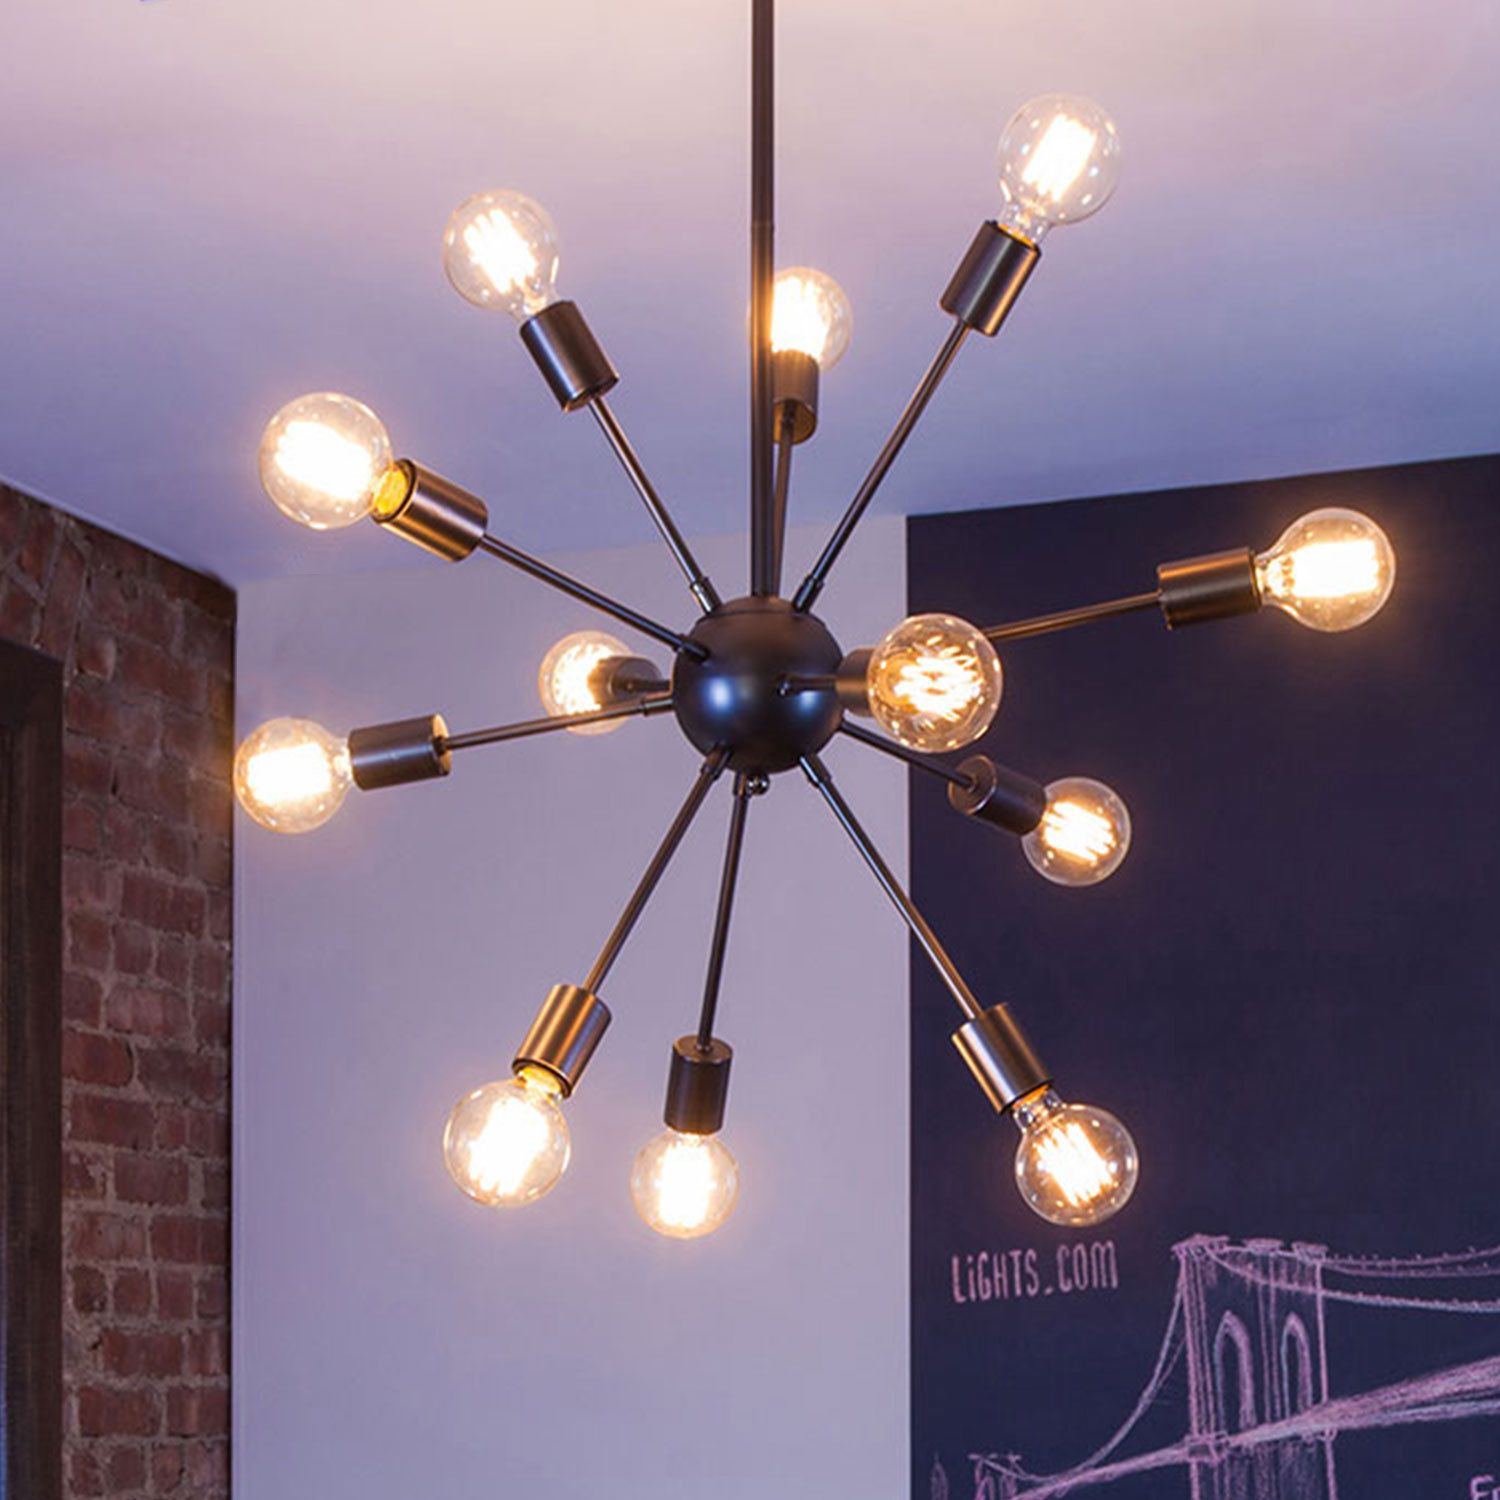 Adjustable 12 Light Gunmetal Sputnik Chandelier Modern Regarding Vroman 12 Light Sputnik Chandeliers (View 17 of 30)